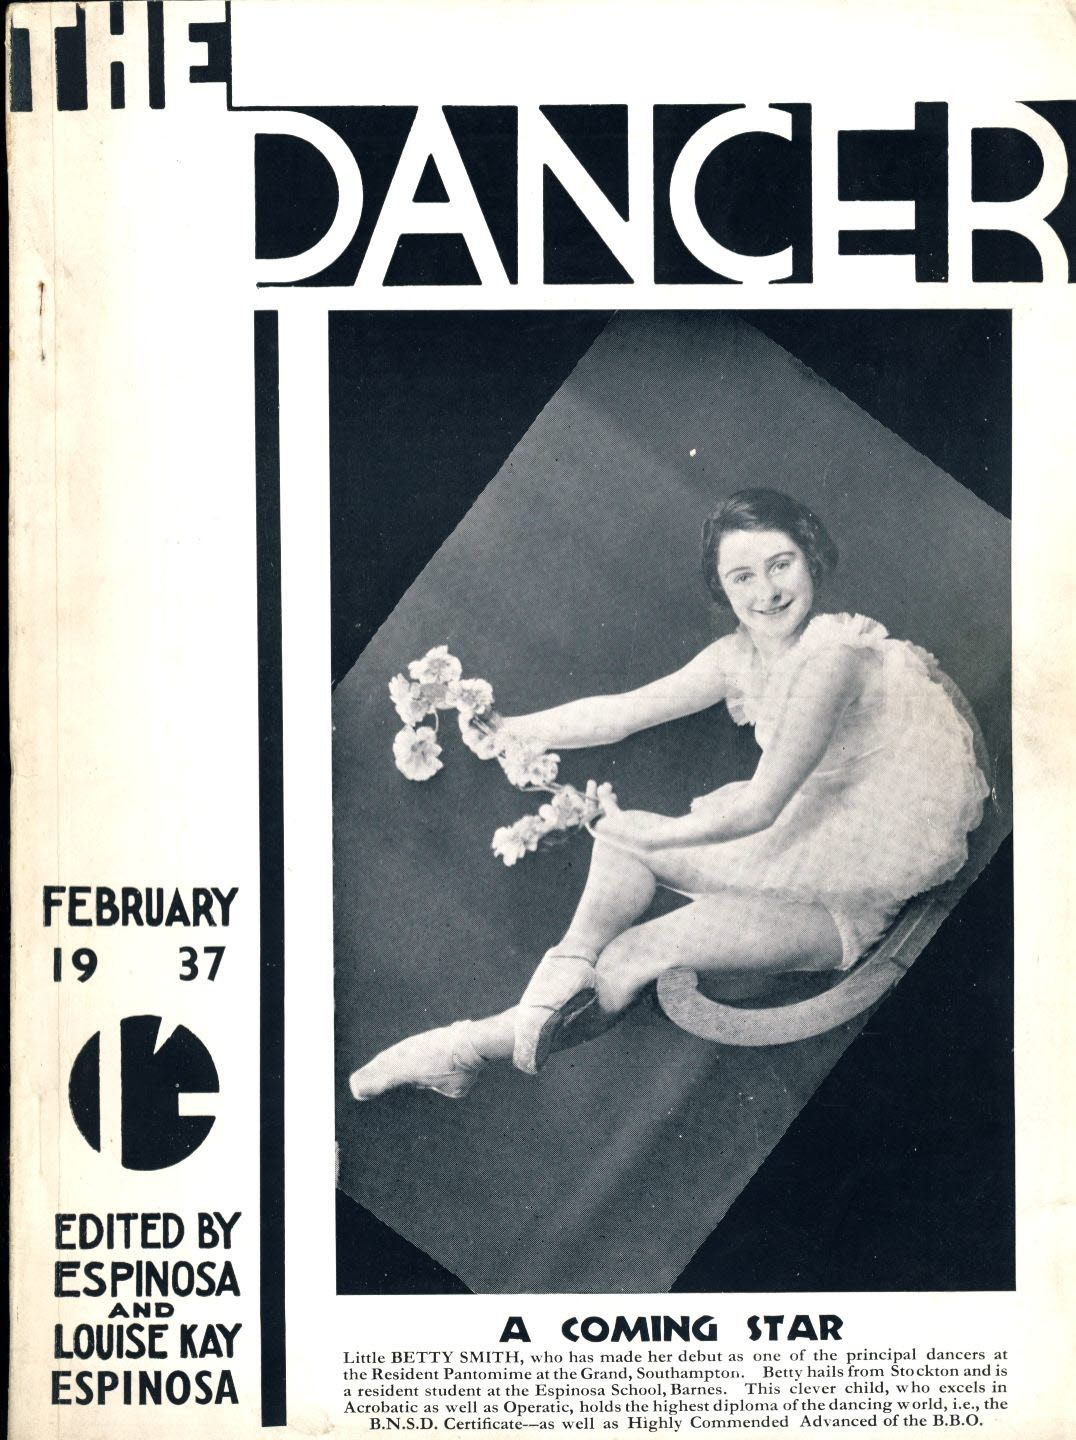 RARE ballet dancing magazine Feb 1937 The Dancer Betty Smith BBO ESPINOSA Louise Kay vintage ref030010,RARE ballet dancing magazine Feb 1937 The Dancer Betty Smith BBO ESPINOSA Louise Kay vintage ref030010 Official Journal of the British Ballet Organization containing articles and photos of students and graduates. Vintage adverts for dancing schools and some dance related suppliers. This is a...